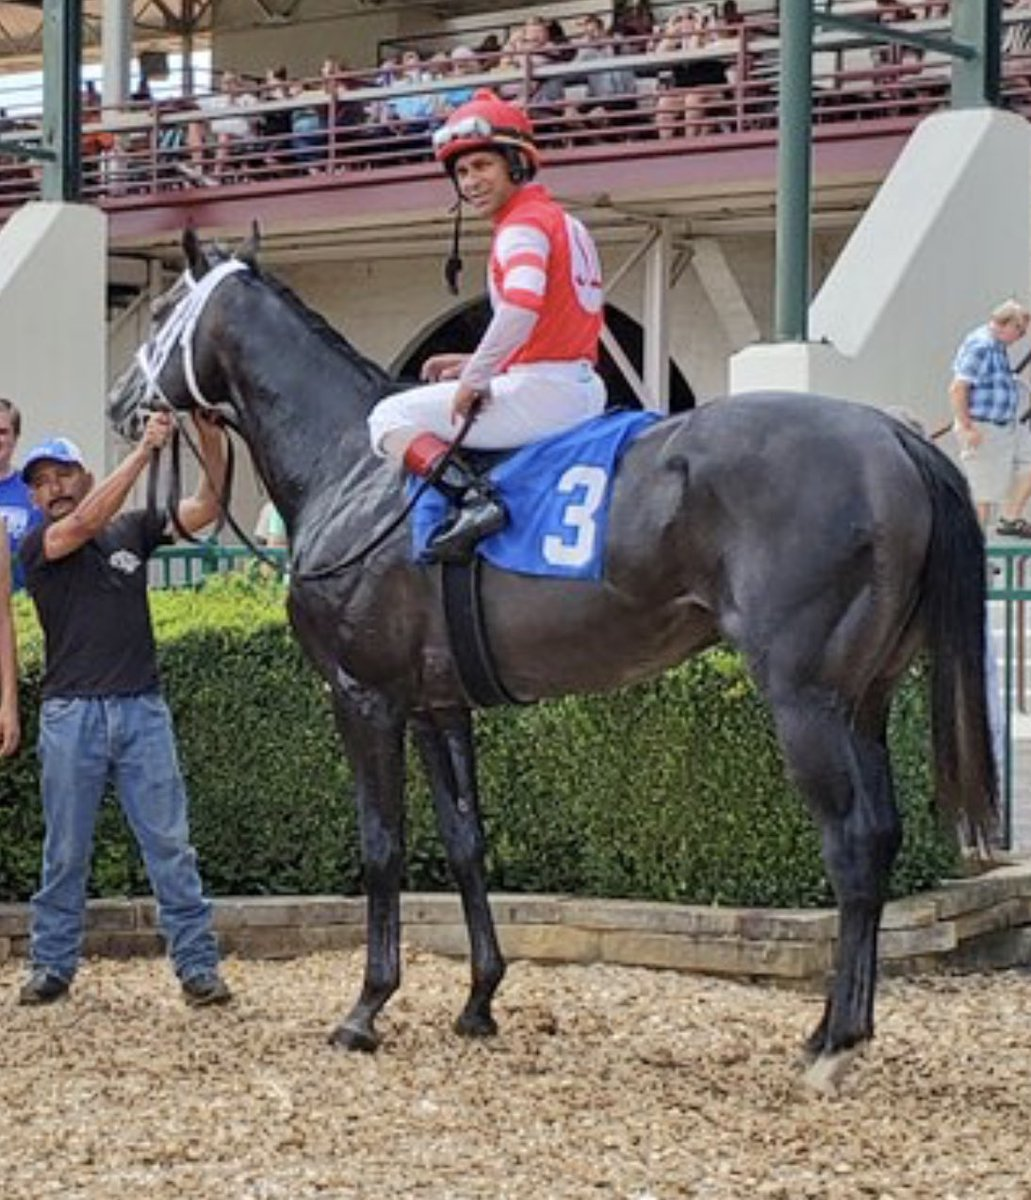 test Twitter Media - Steve Landers has had a big week! 3 winners all purchased at public auction and trained by @bradcoxracing. Leofric ($100k) gave him his first Graded Stake win in G3 WV Gov Cup Sat. Pole Setter ($220k) won MSW nicely on debut Sunday. Bold Prophet ($85k) won Allowance in hand today https://t.co/RmAAyBvHEv